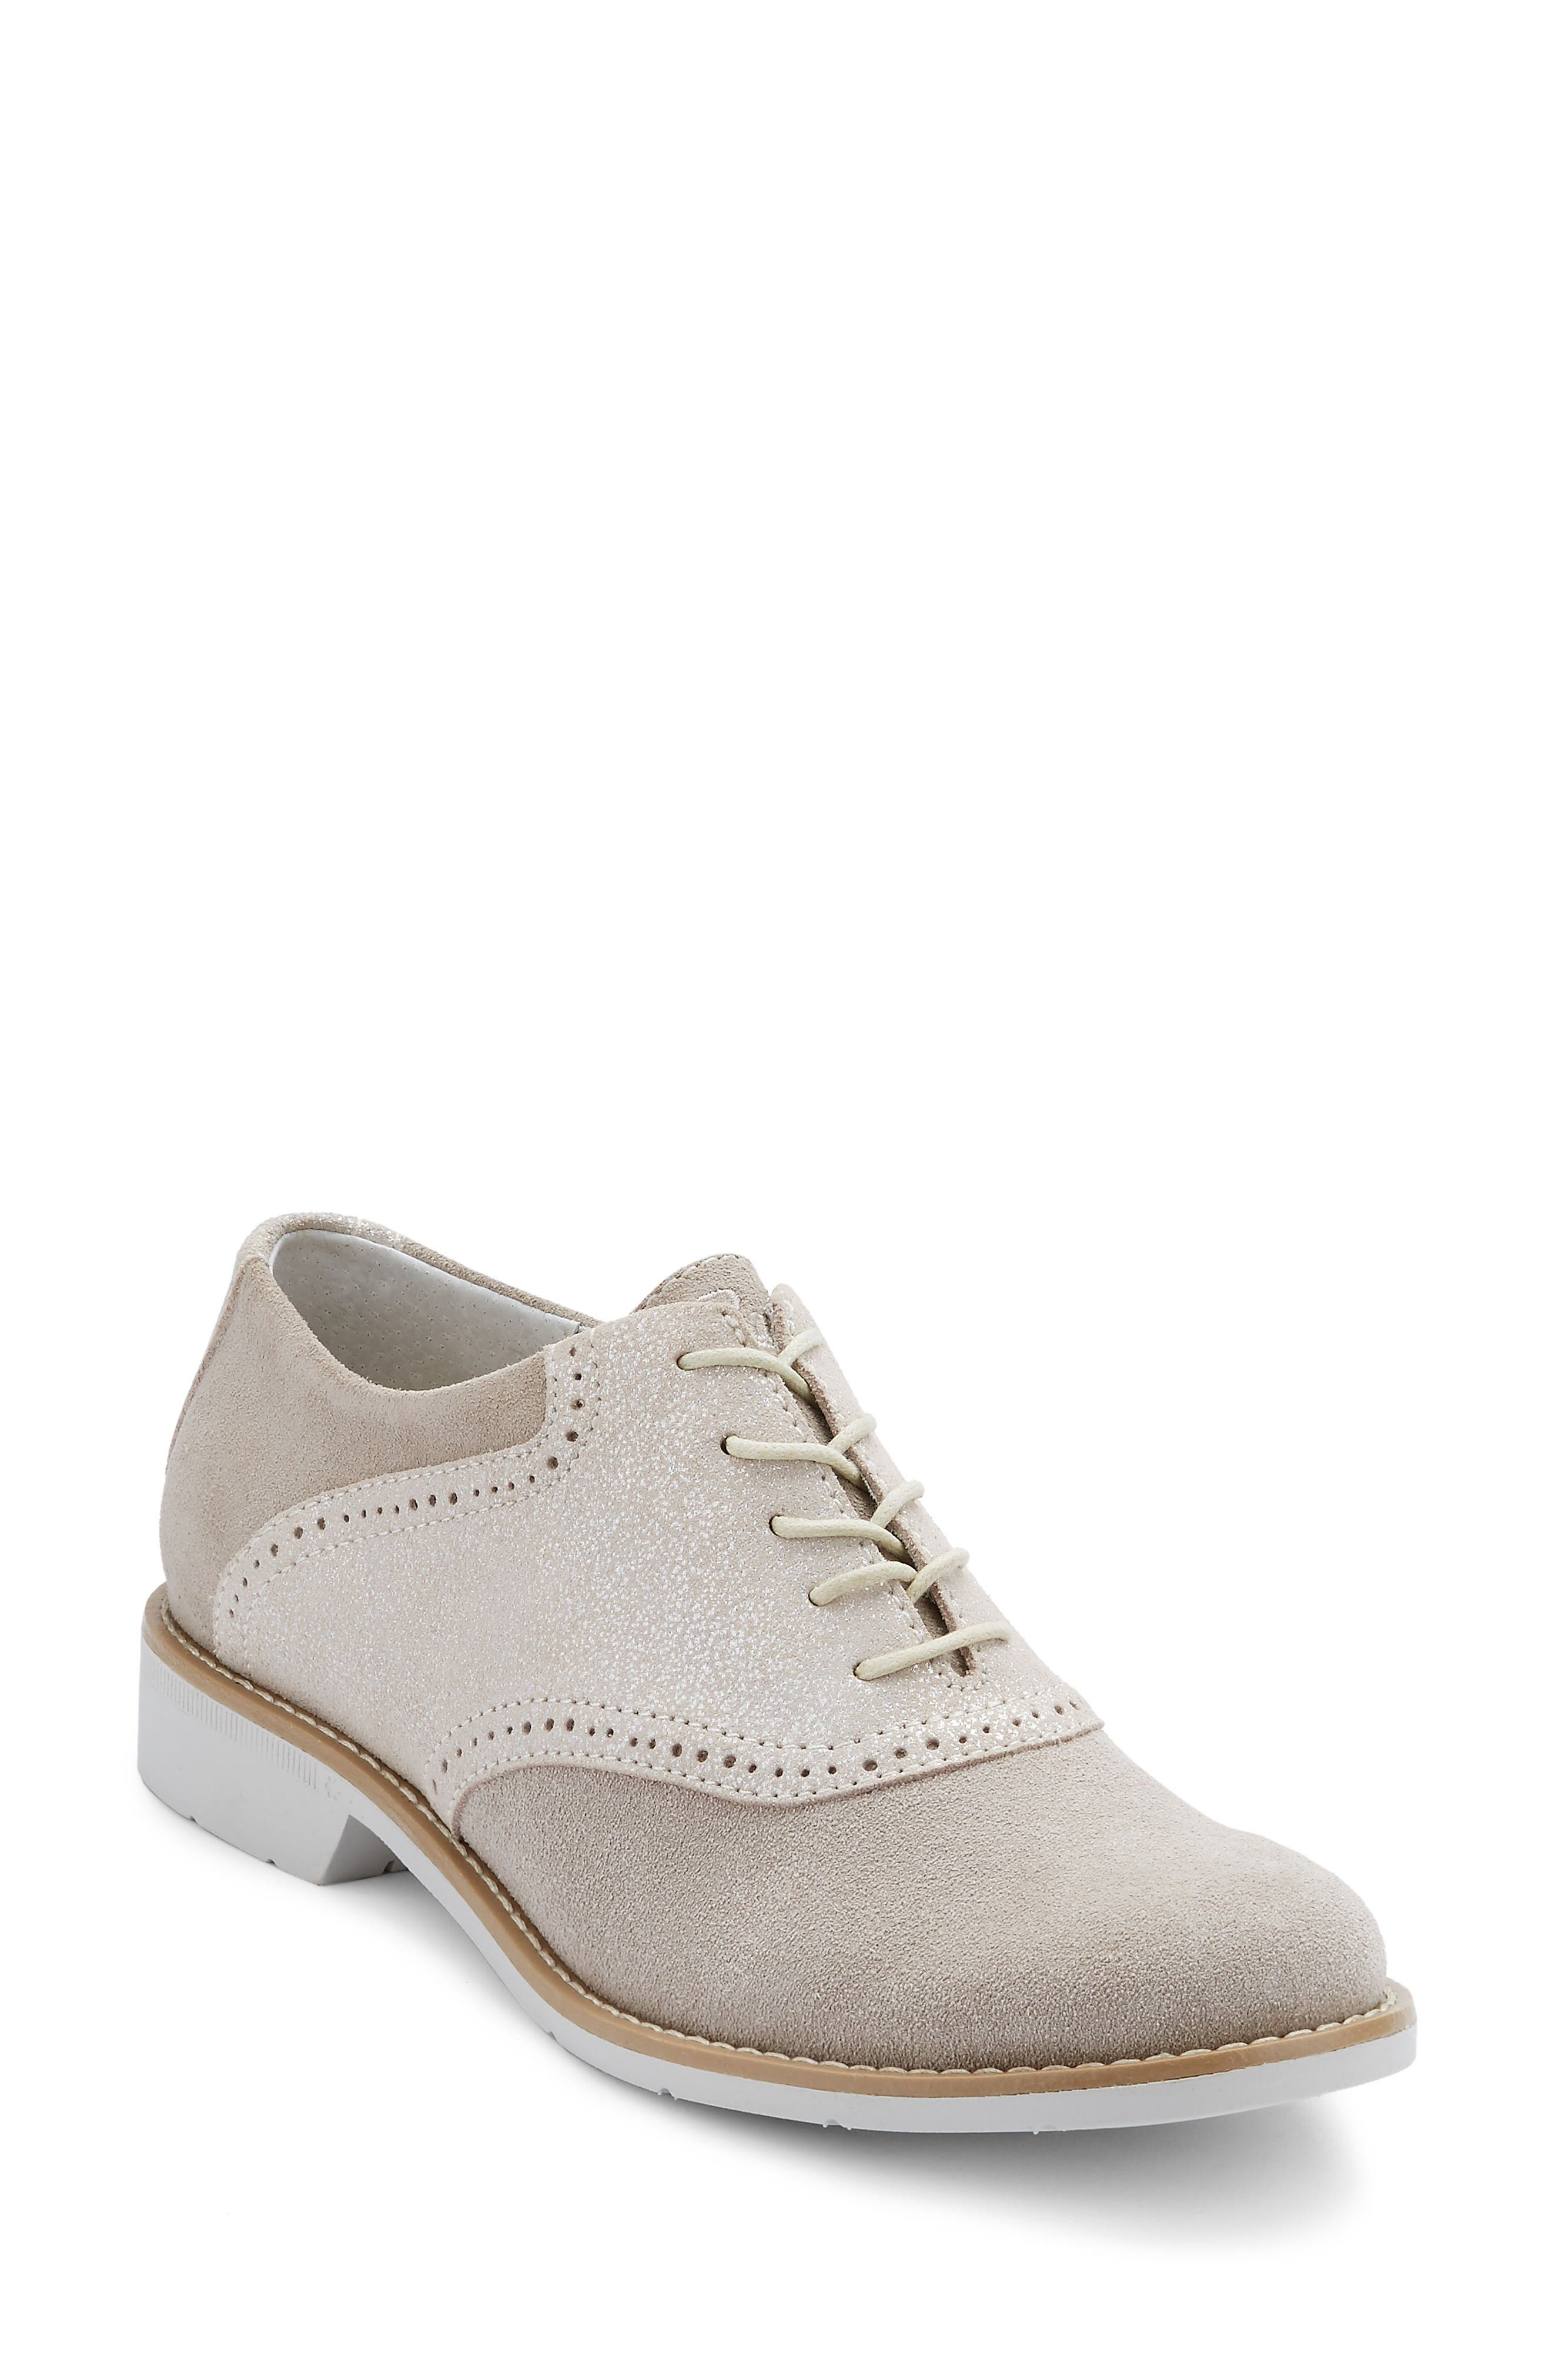 G.H. Bass and Co. Dora Lace-Up Oxford (Women)